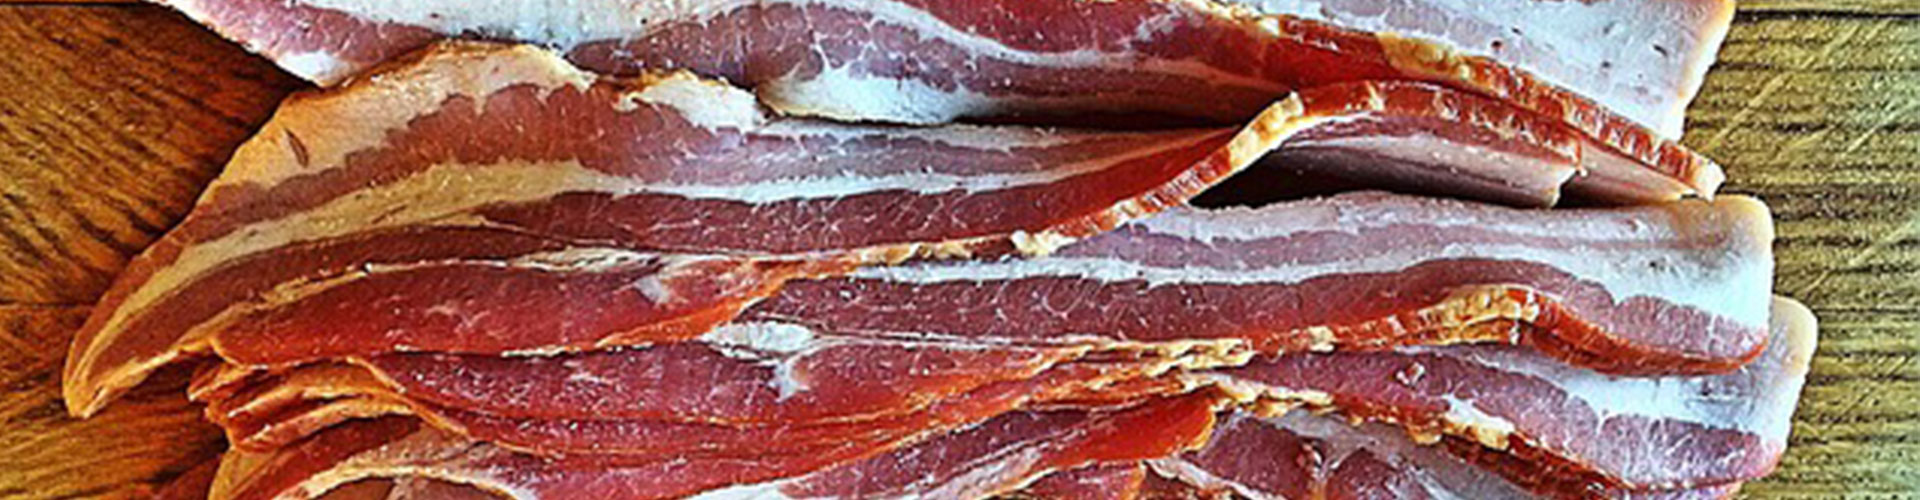 Make your own bacon from scratch!